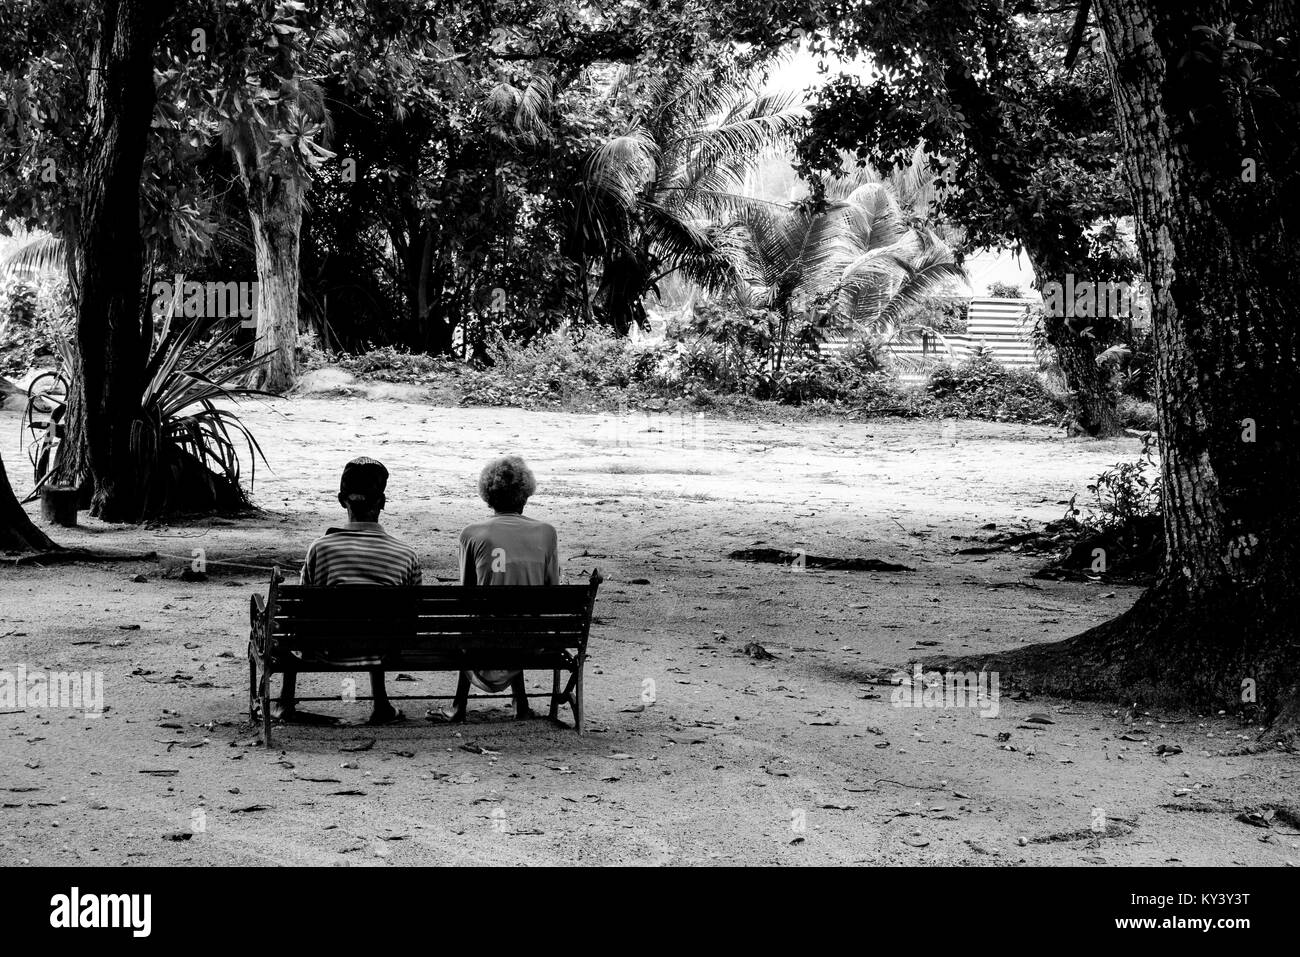 aged couple sitting on a bench, elderly duo in a tropical scenery - Stock Image